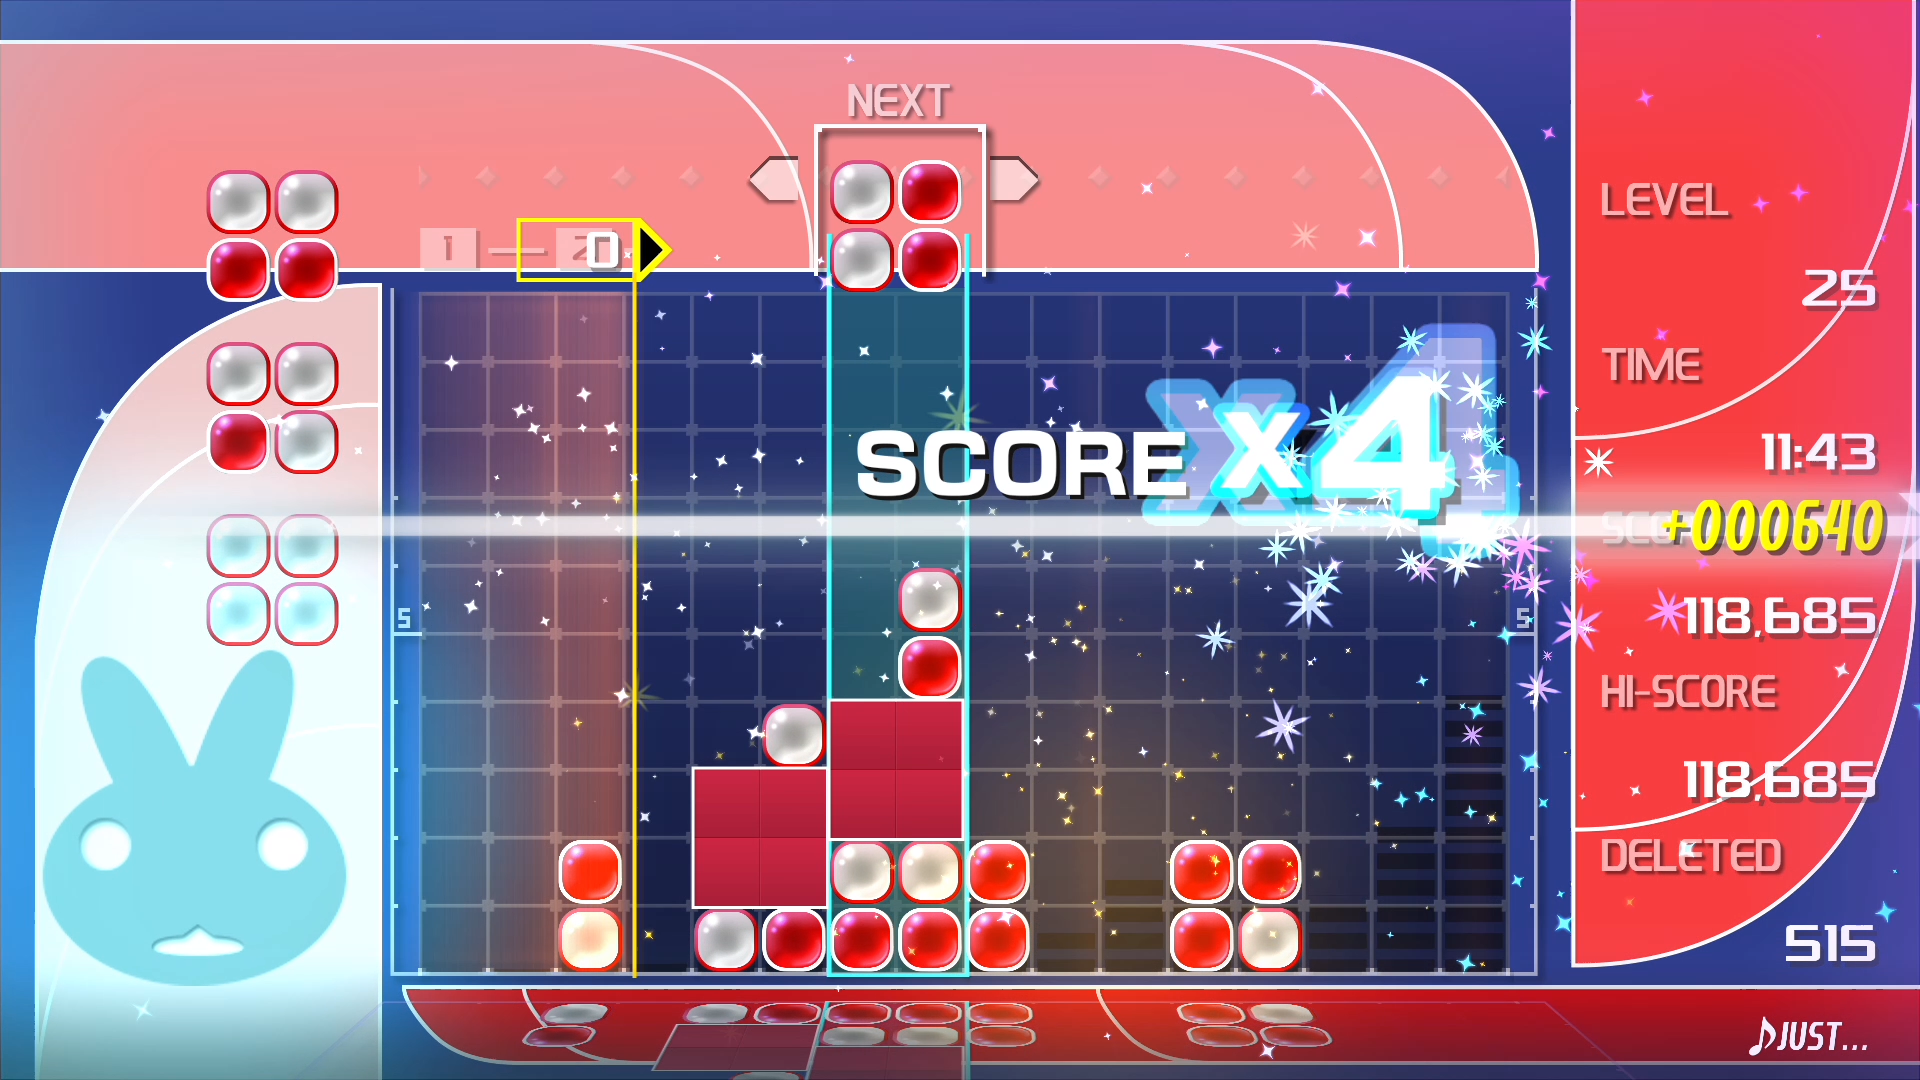 (Update) Lumines Remastered comes to Switch this spring